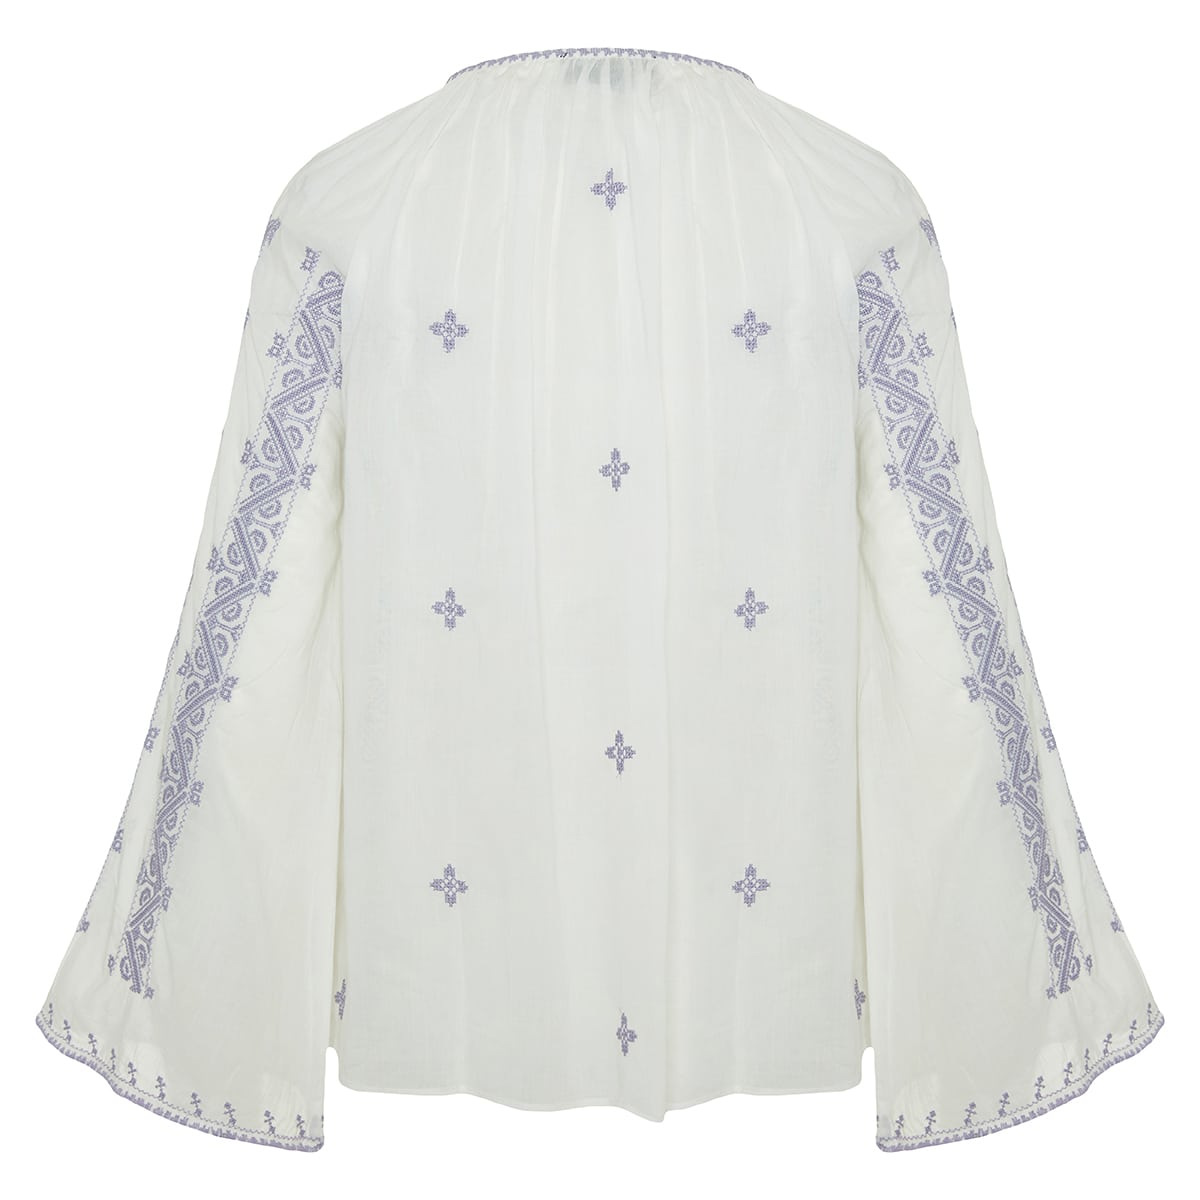 Anna bell-sleeved embroidered blouse